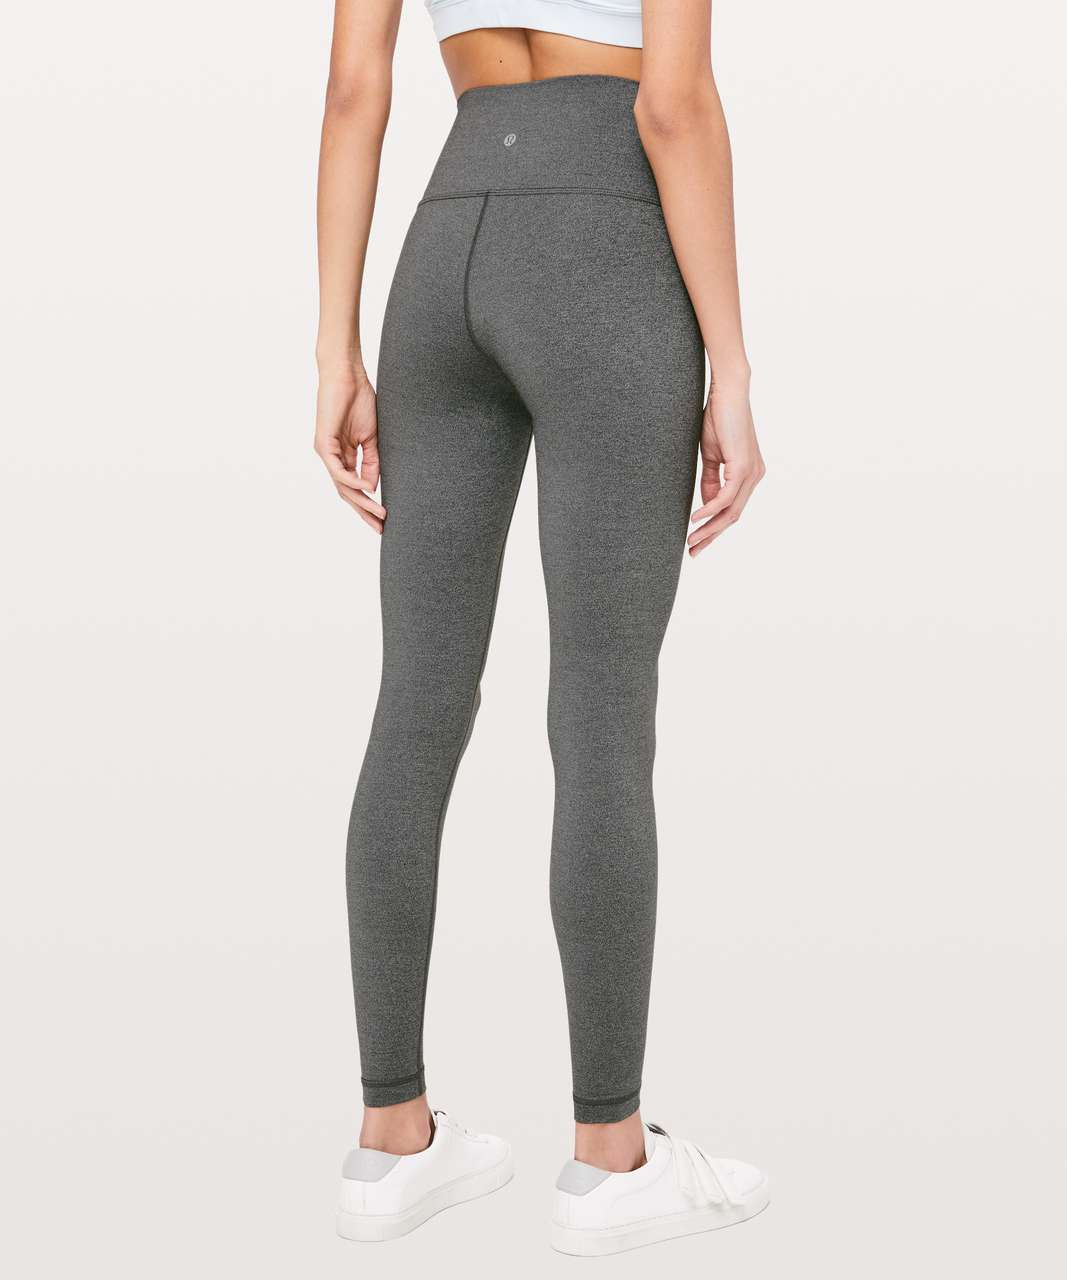 "Lululemon Wunder Under High-Rise Tight *Luxtreme 28"" - Heathered Black"